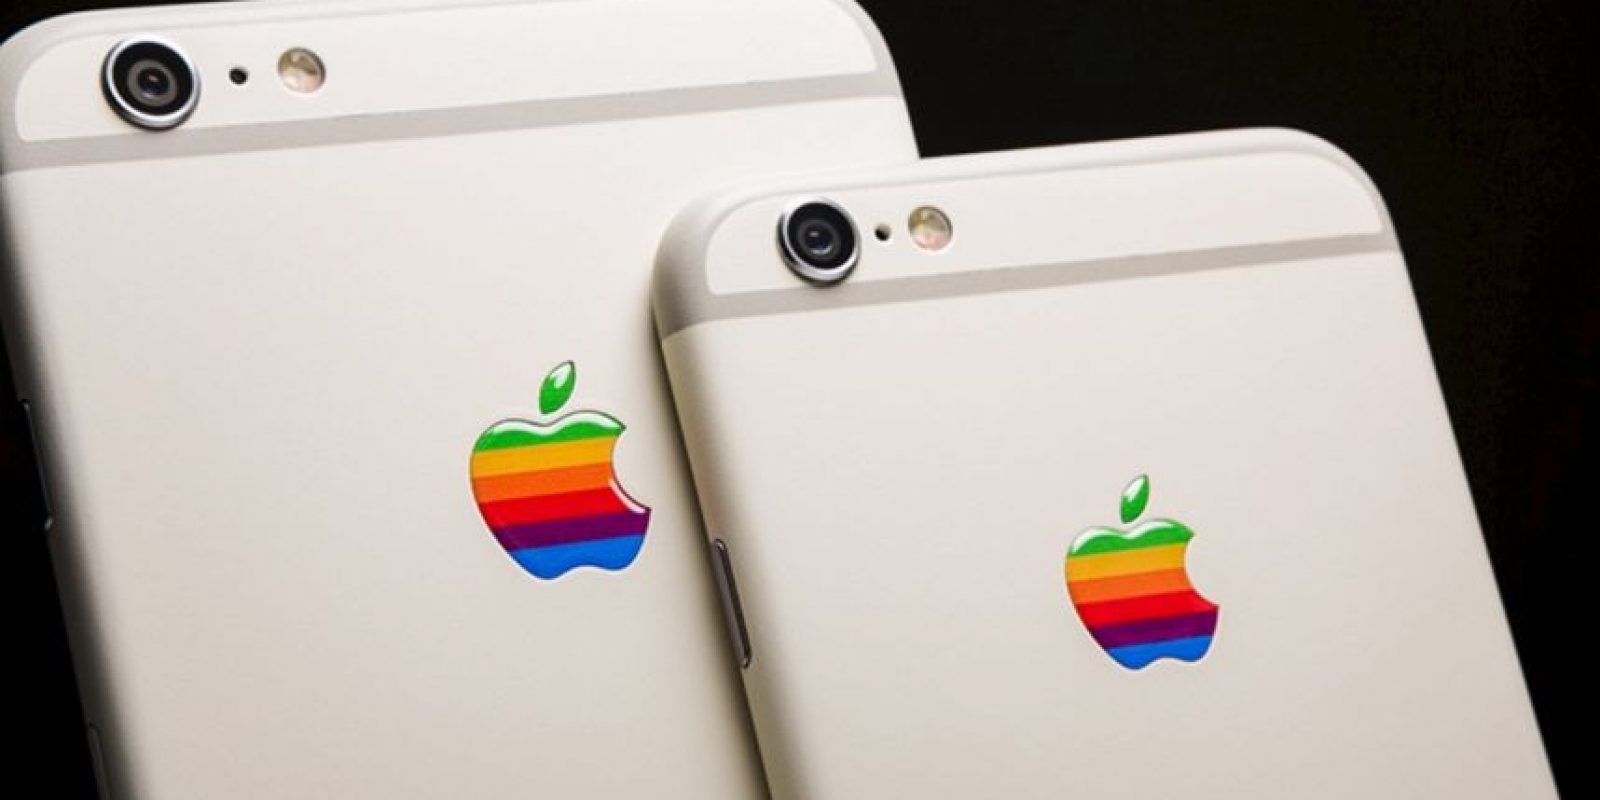 iPhone 6s y iPhone 6s Plus al estilo del Apple IIe. Foto: vía colorware.com